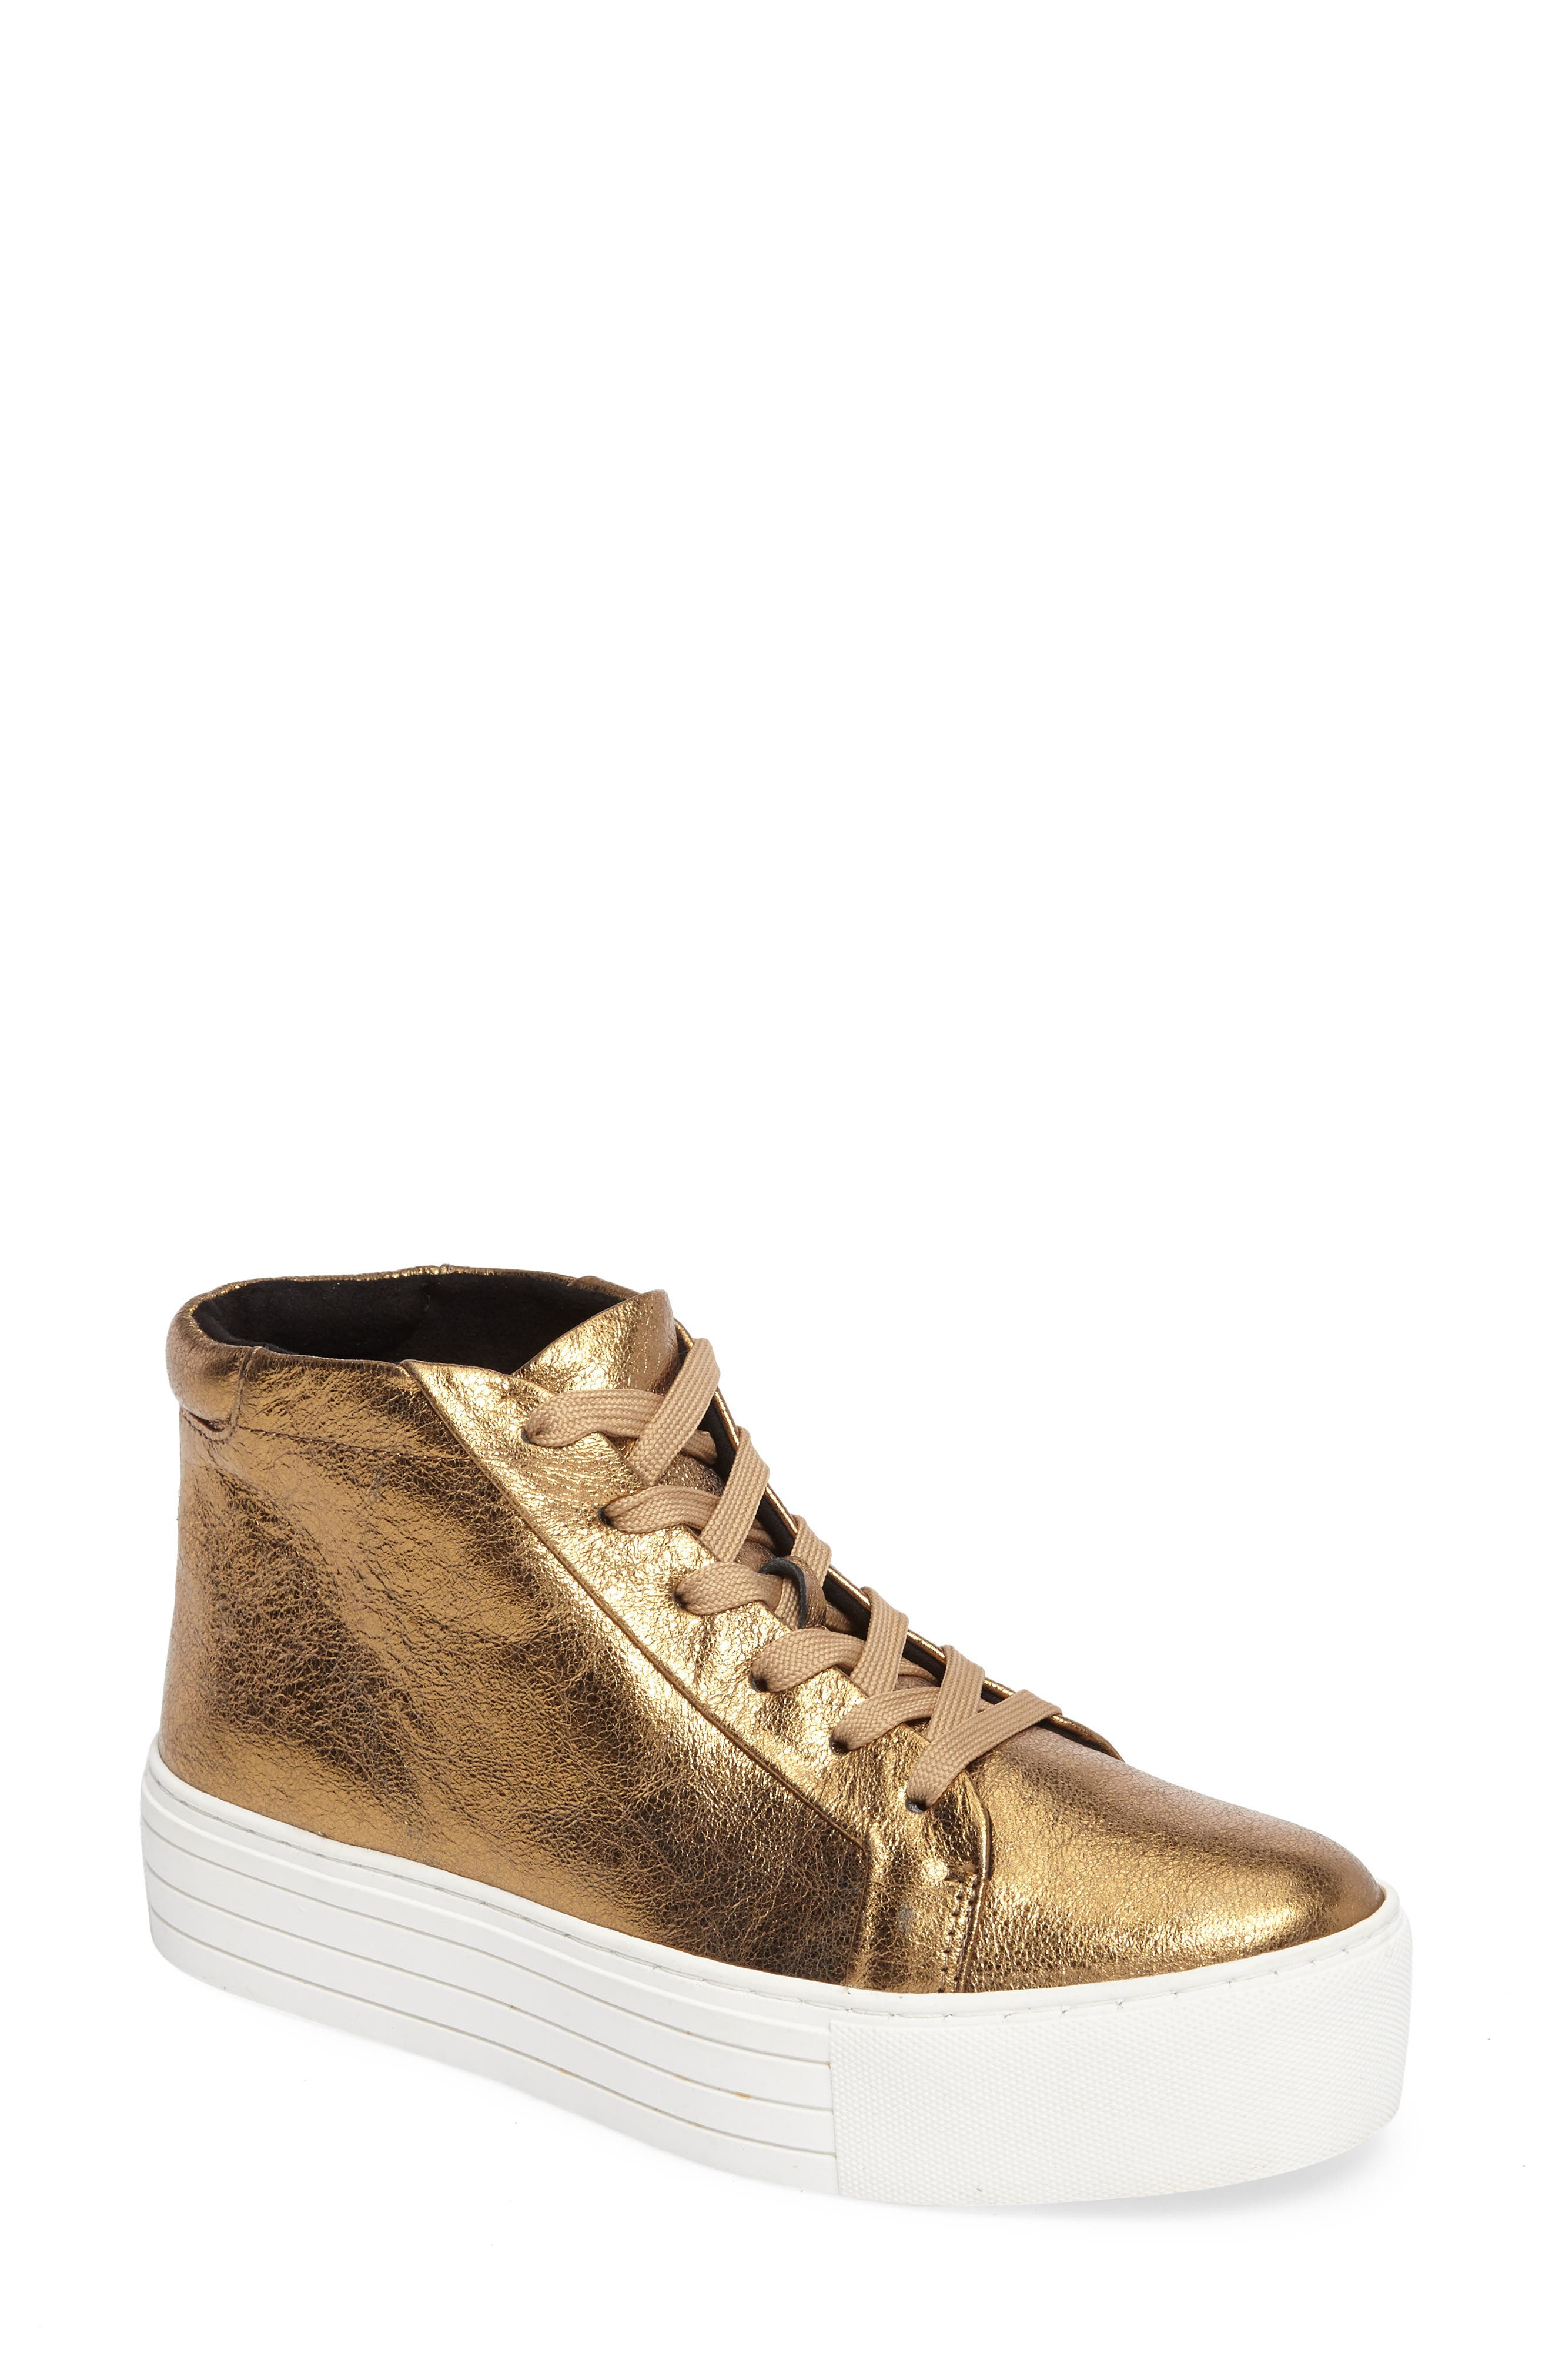 Kenneth Cole New York Janette High Top Platform Sneaker (Women)